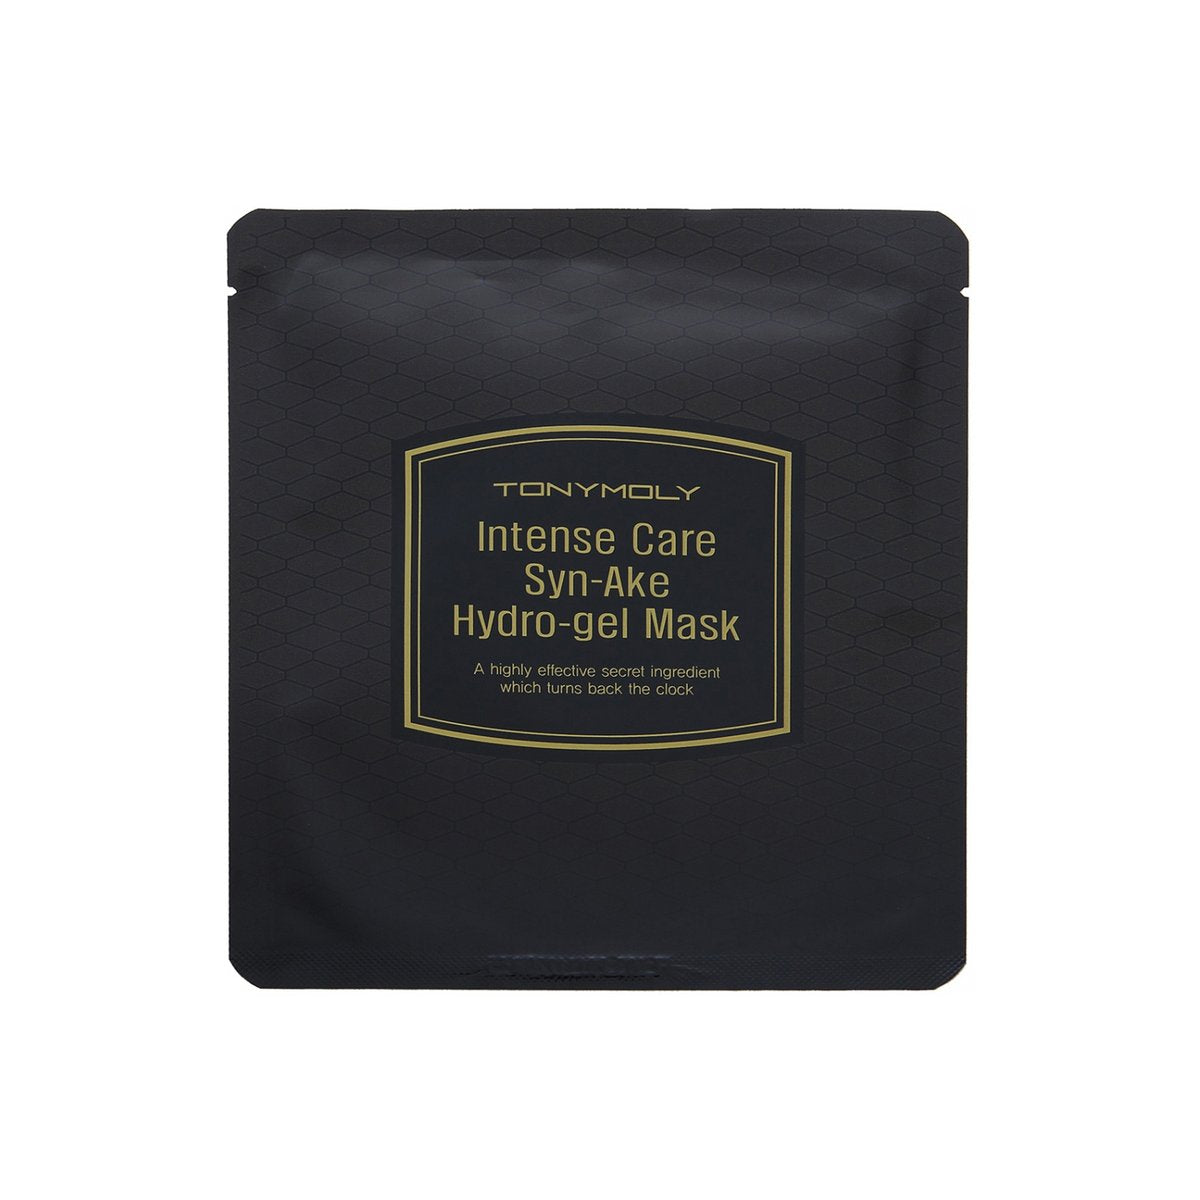 [Tonymoly] Intense Care Syn-Ake Hydro-Gel Mask 1 ea